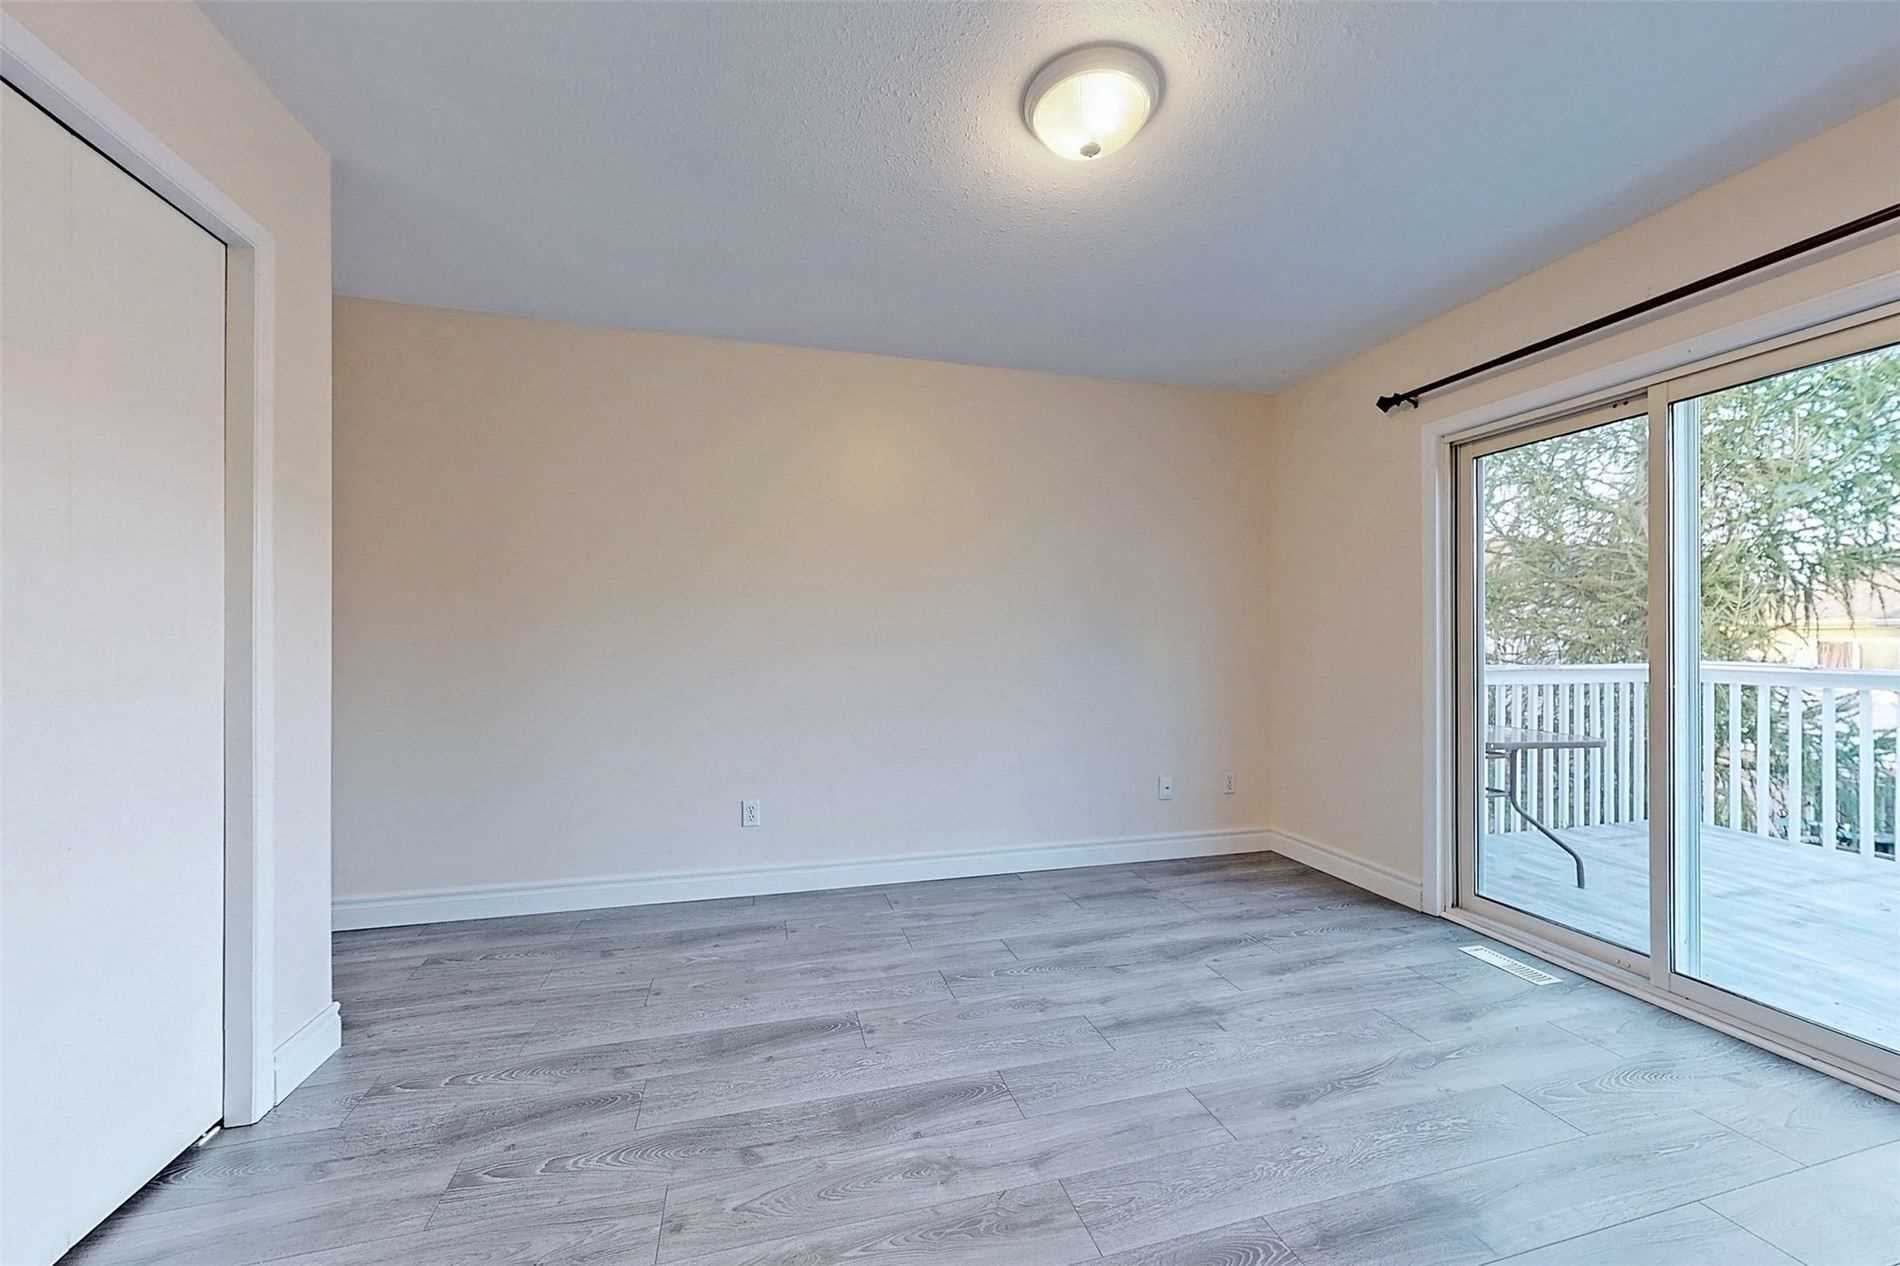 Detached house For Lease In London - 1090 Farnsborough Cres, London, Ontario, Canada N5V 4Y9 , 3 Bedrooms Bedrooms, ,2 BathroomsBathrooms,Detached,For Lease,Farnsborough